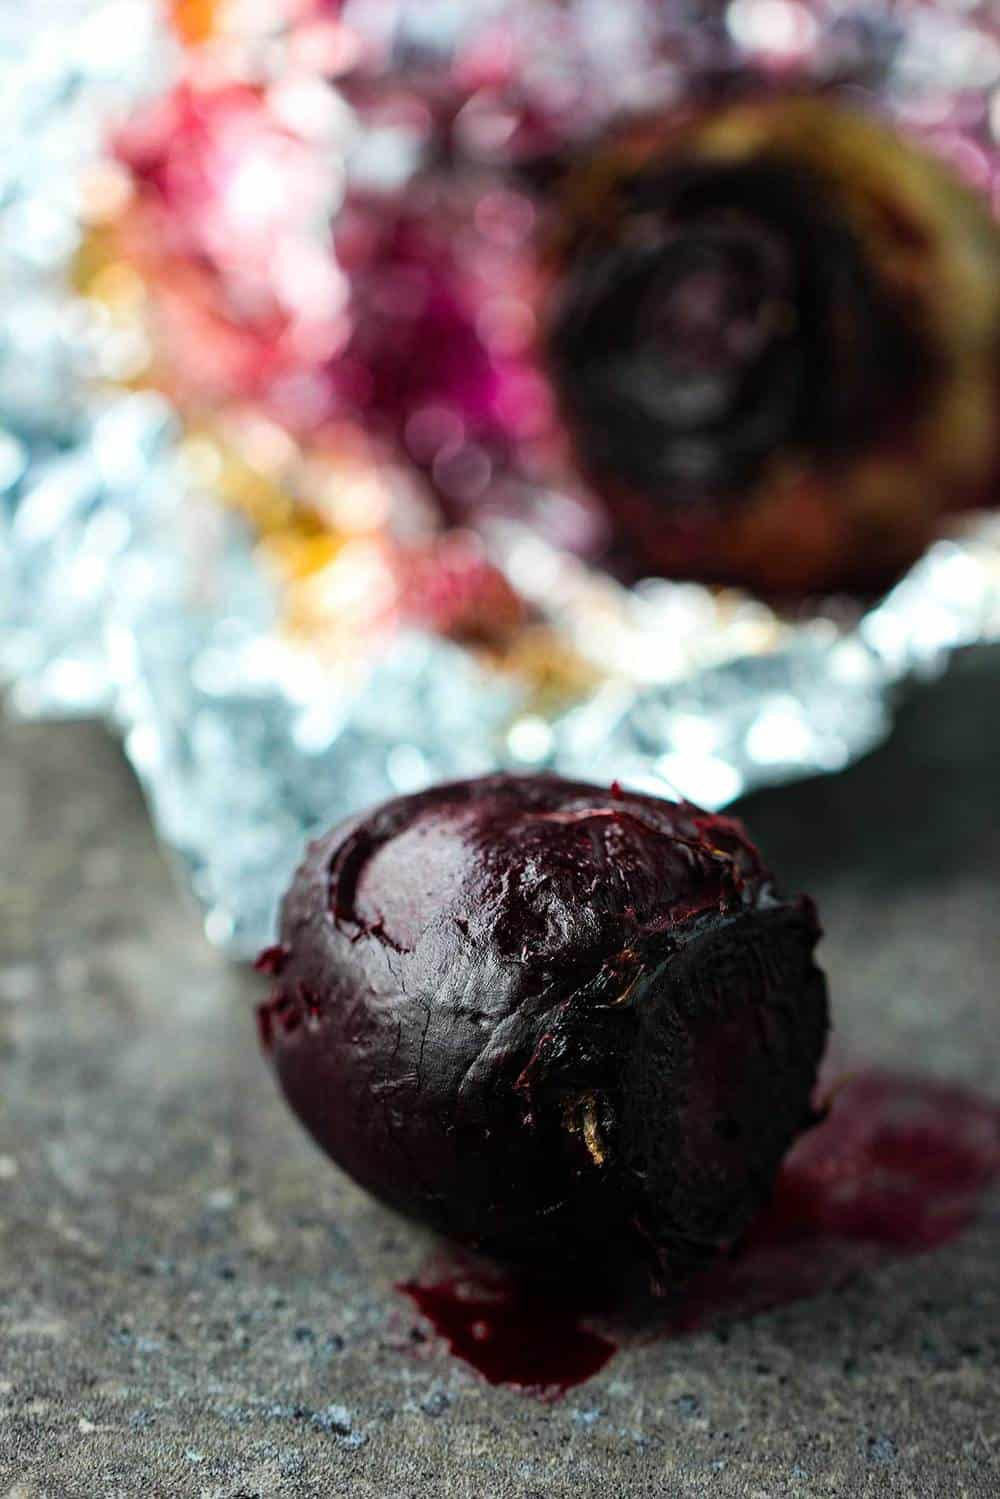 Roasted beet in foil on a counter